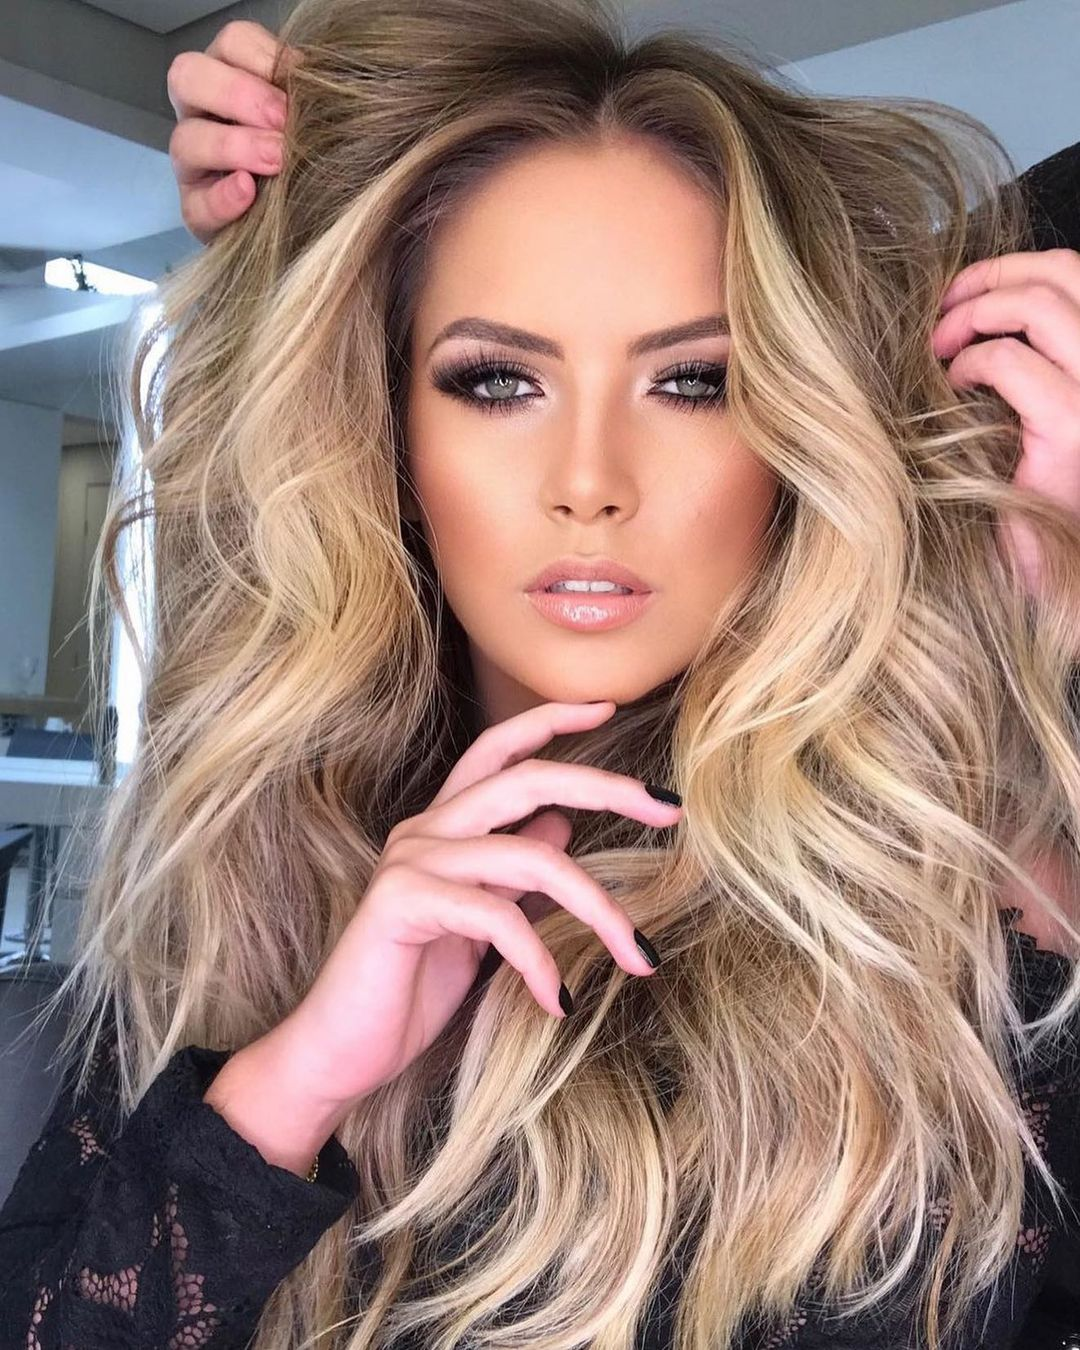 50 Awesome Long Layered Hair Ideas For 2021 images 38